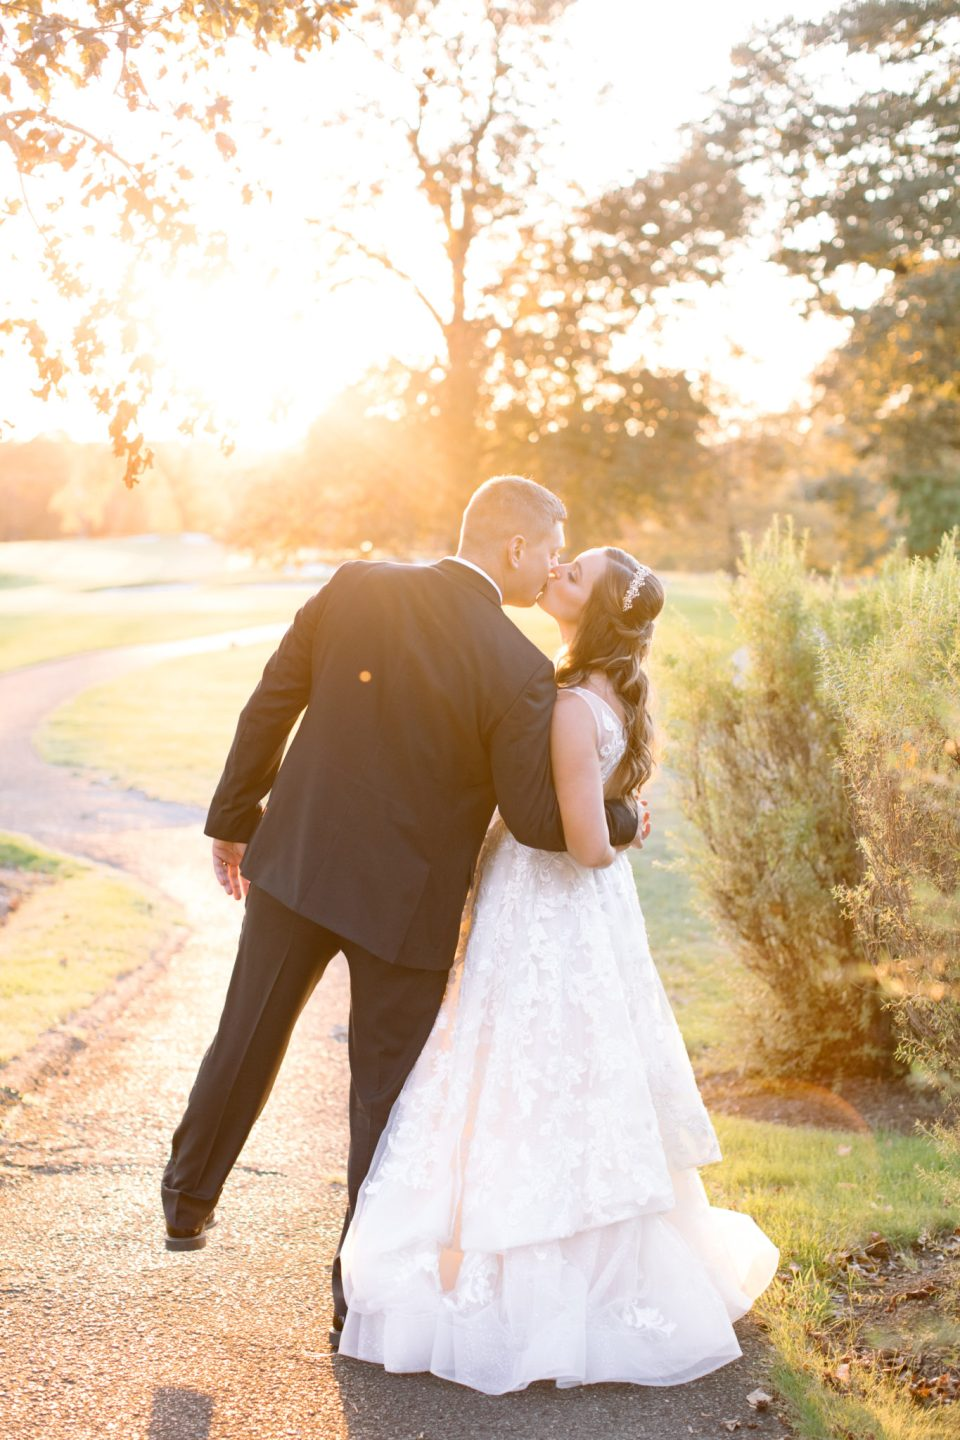 New Jersey wedding day photographed by Ashley Mac Photographs